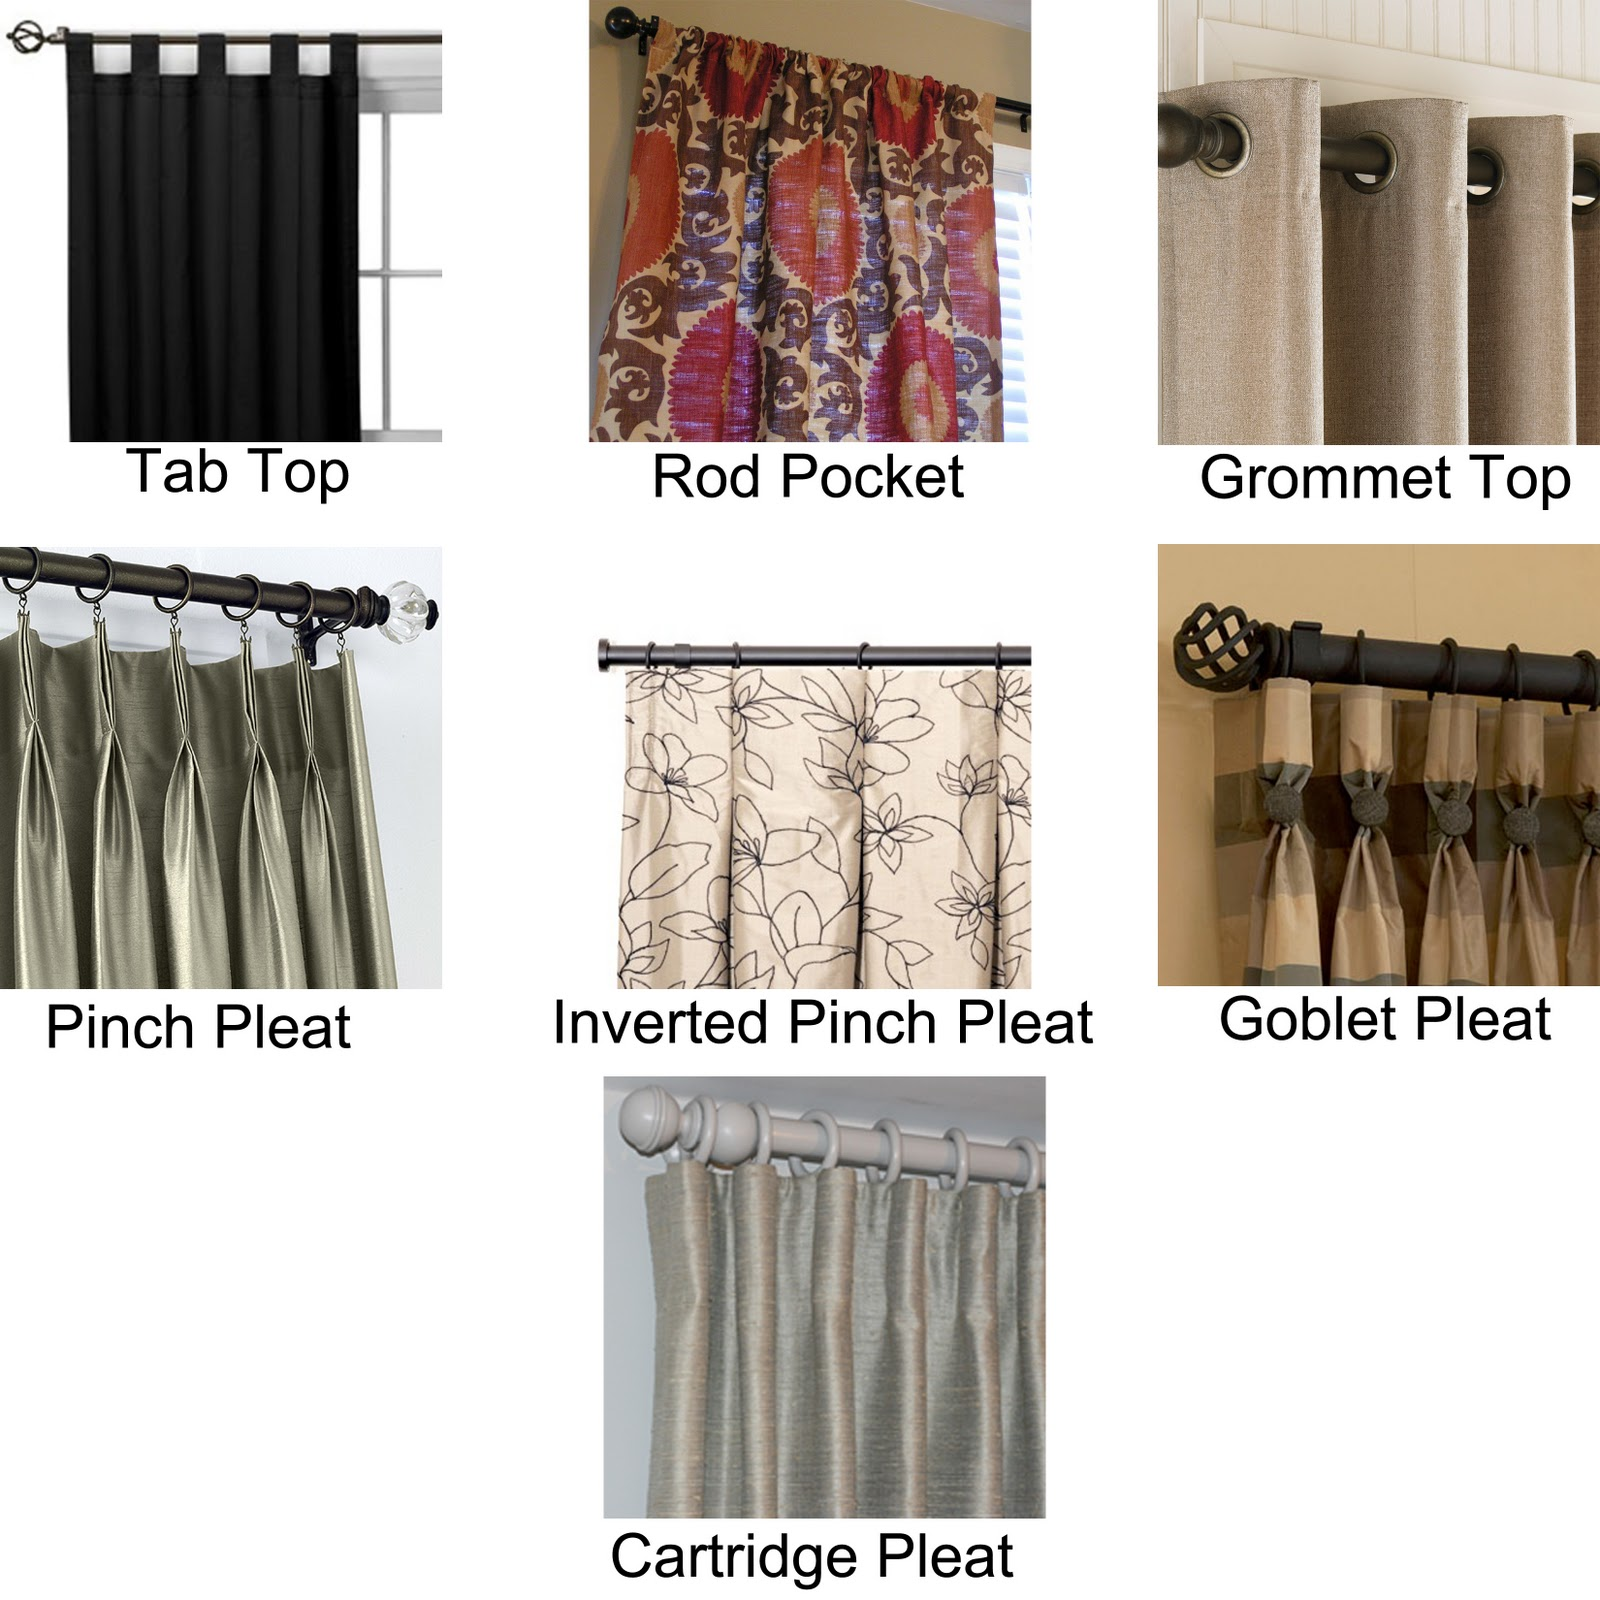 curtains mini vinyl roller vertical for up drapes ready online bay plantation window treatments windows automated shutters venetian design fabric made decoration blinds roll bamboo custom and aluminum timber ideas curtain